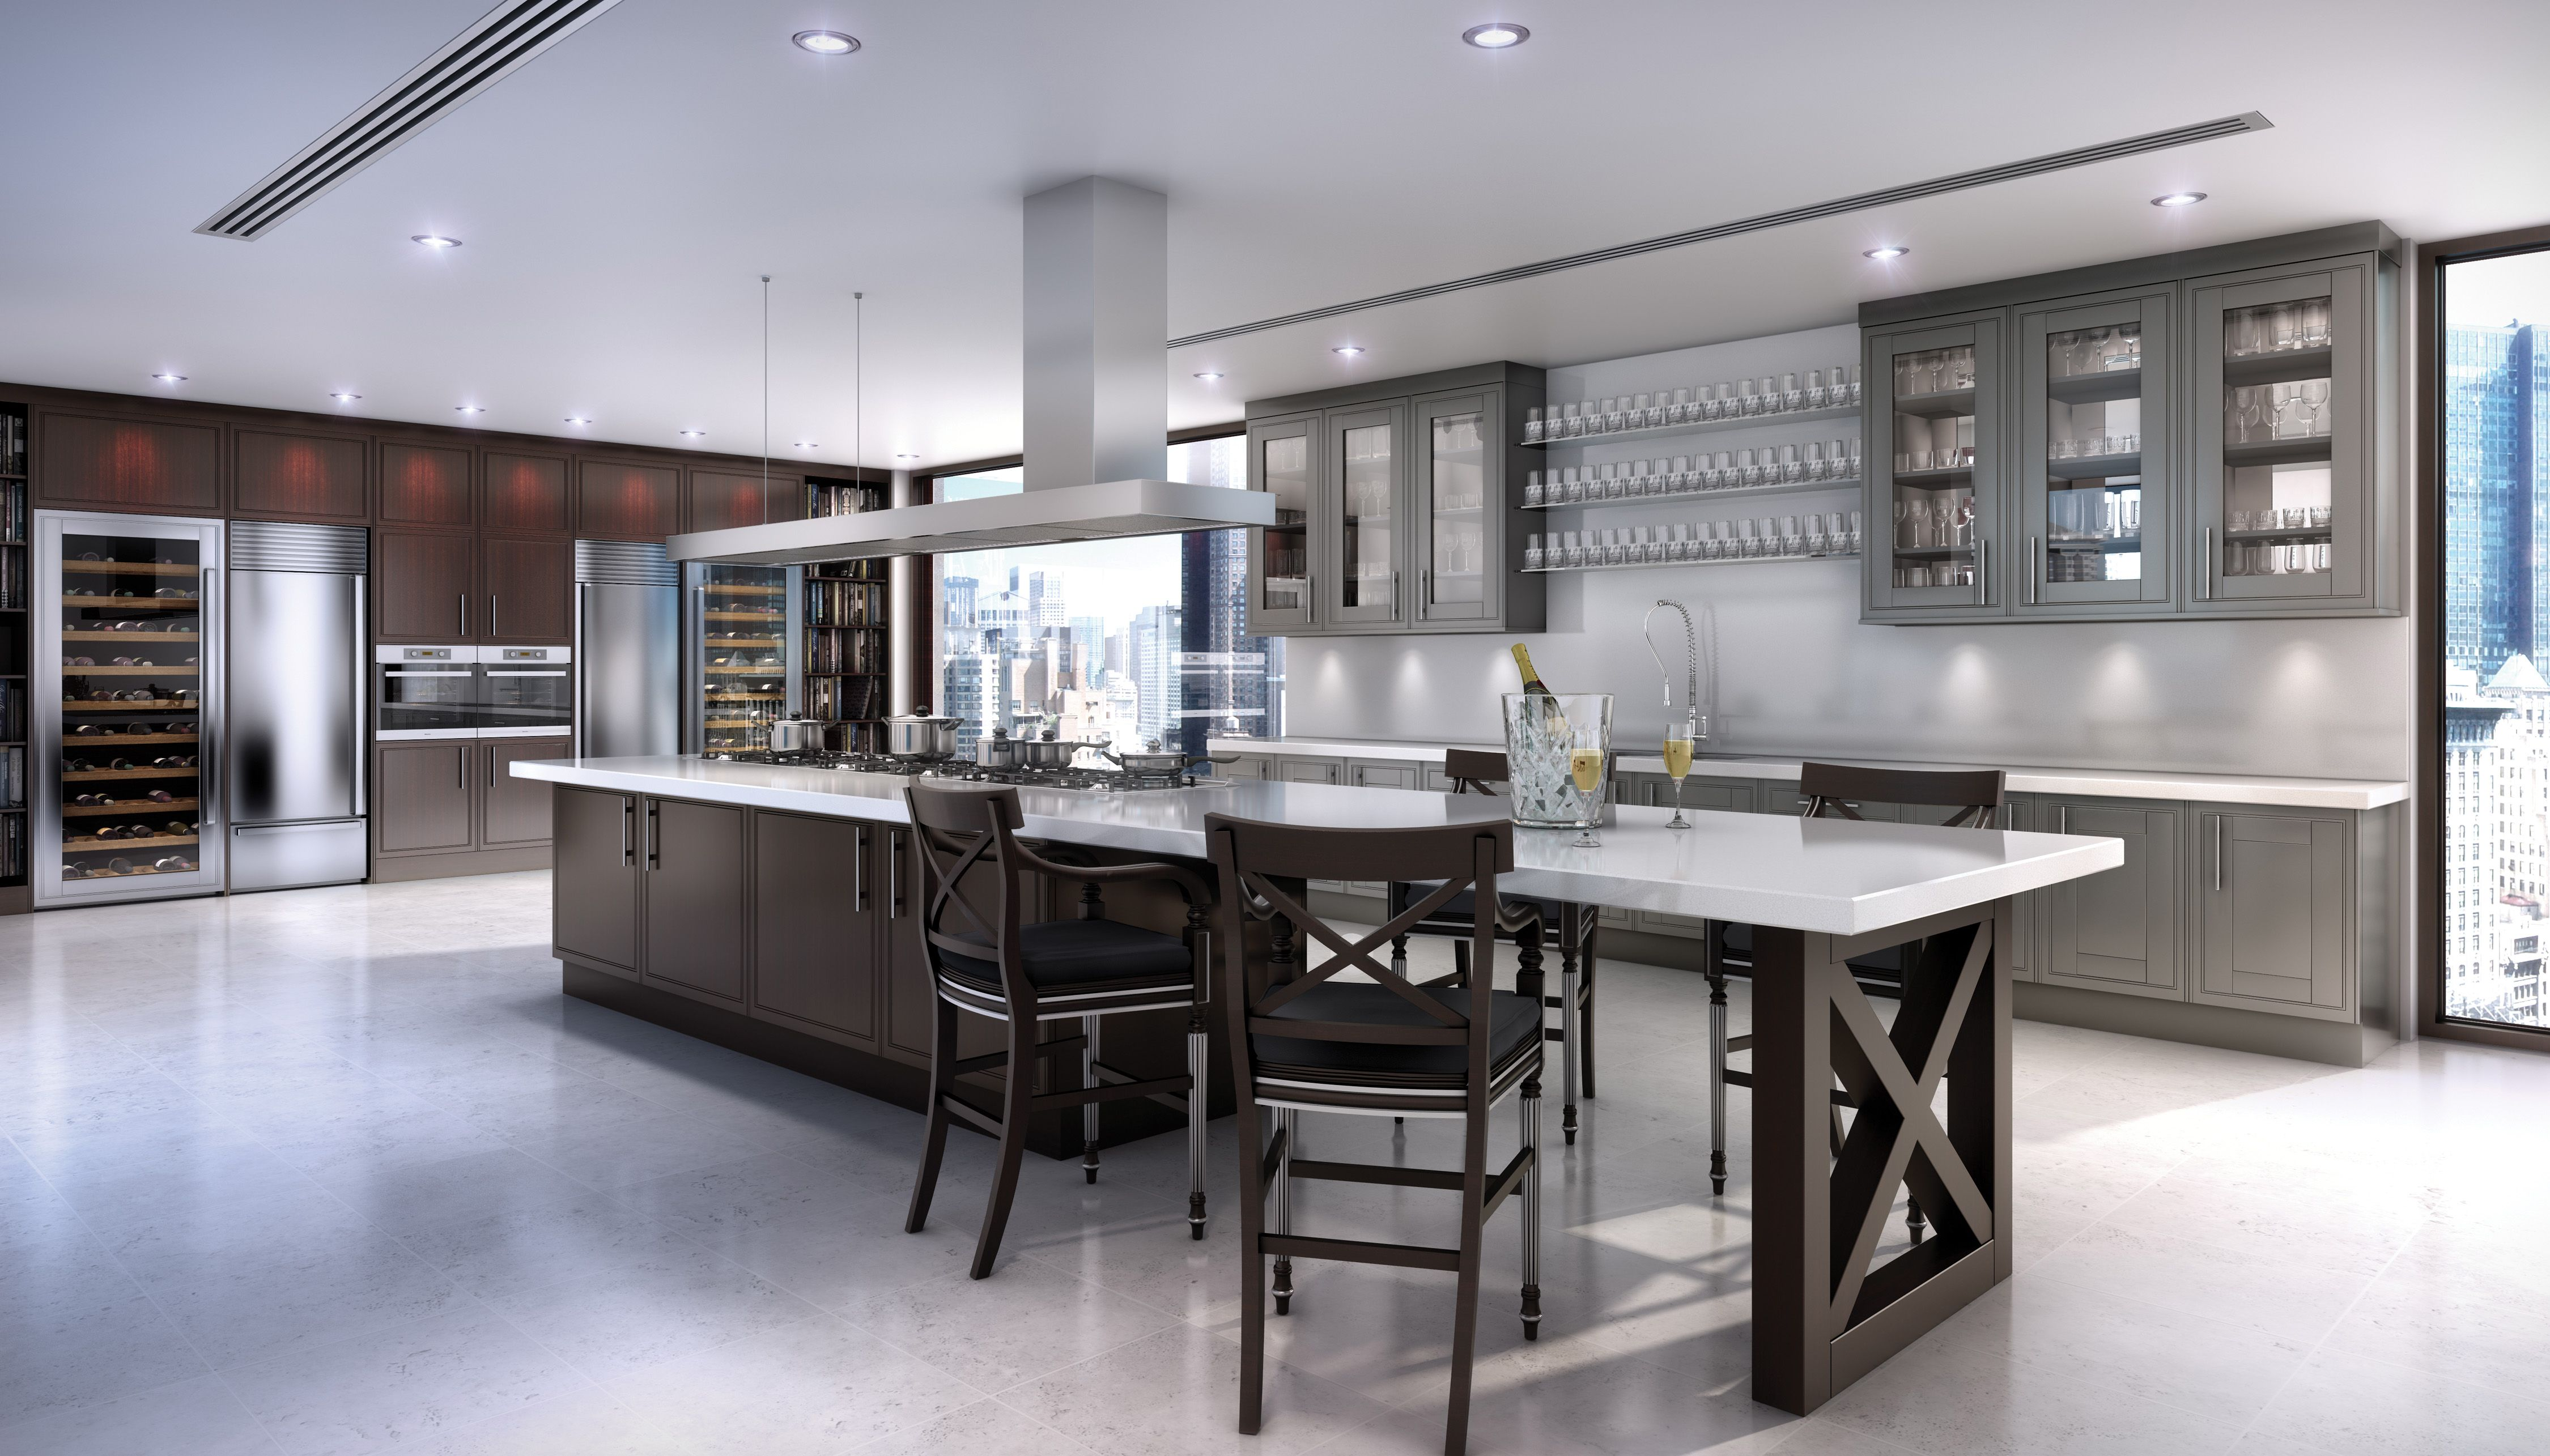 Clive christian contemporary kitchen in walnut and grey - Clive christian kitchen cabinets ...